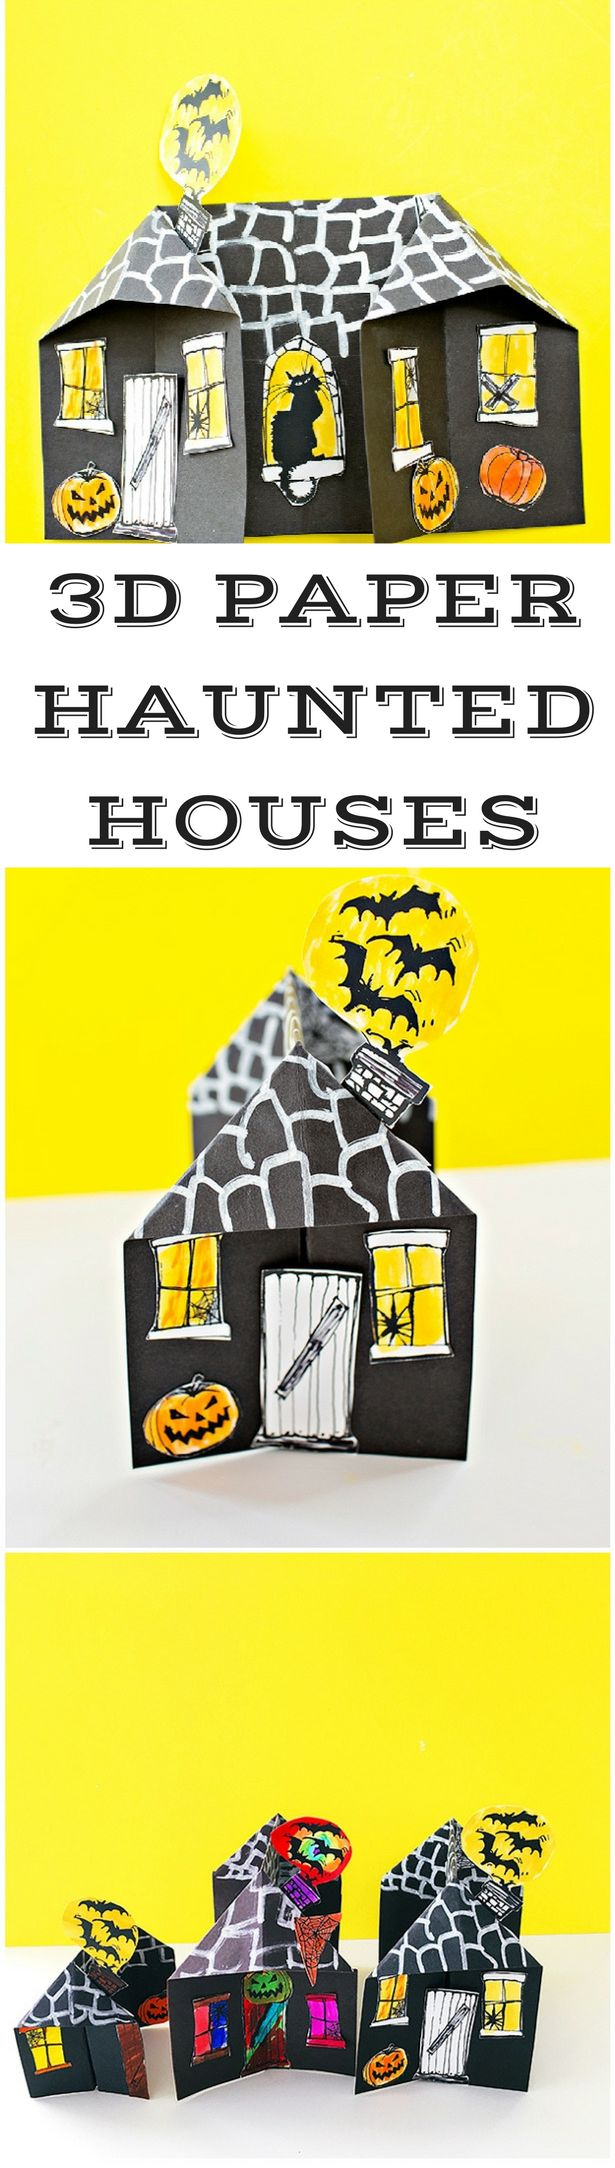 3D Spooky Paper Haunted House Craft. Cute Halloween paper craft for kids. Printable coloring templates included.